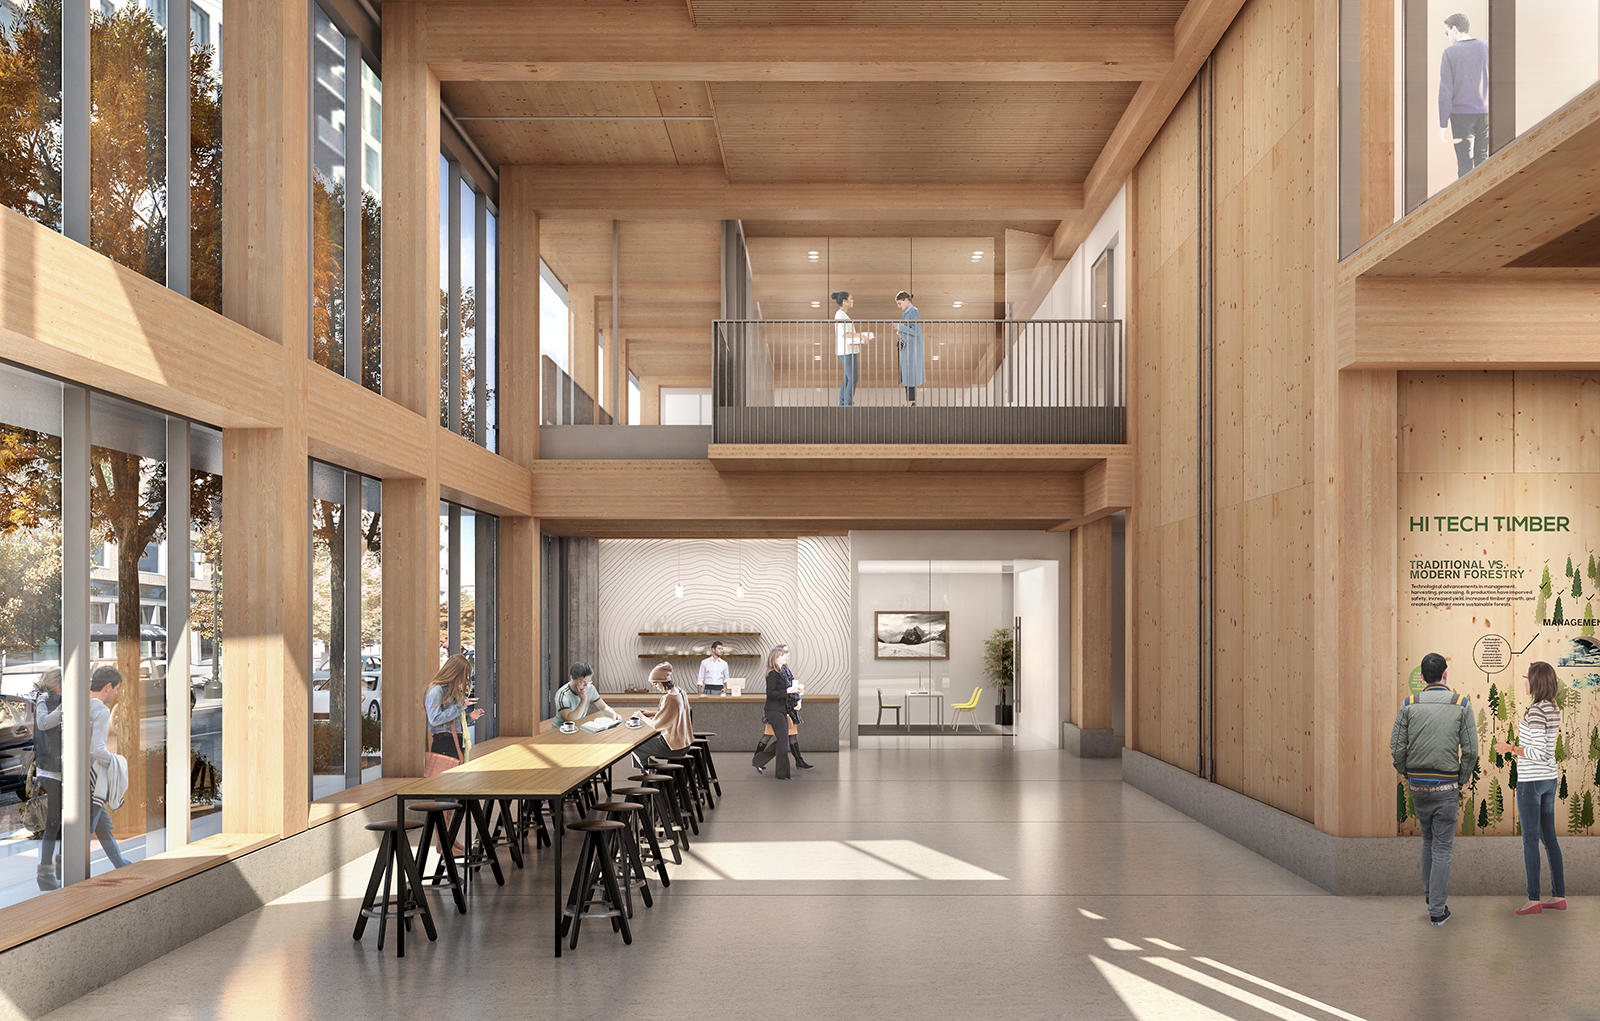 Rendered CLT Wood High-Rise Structure,